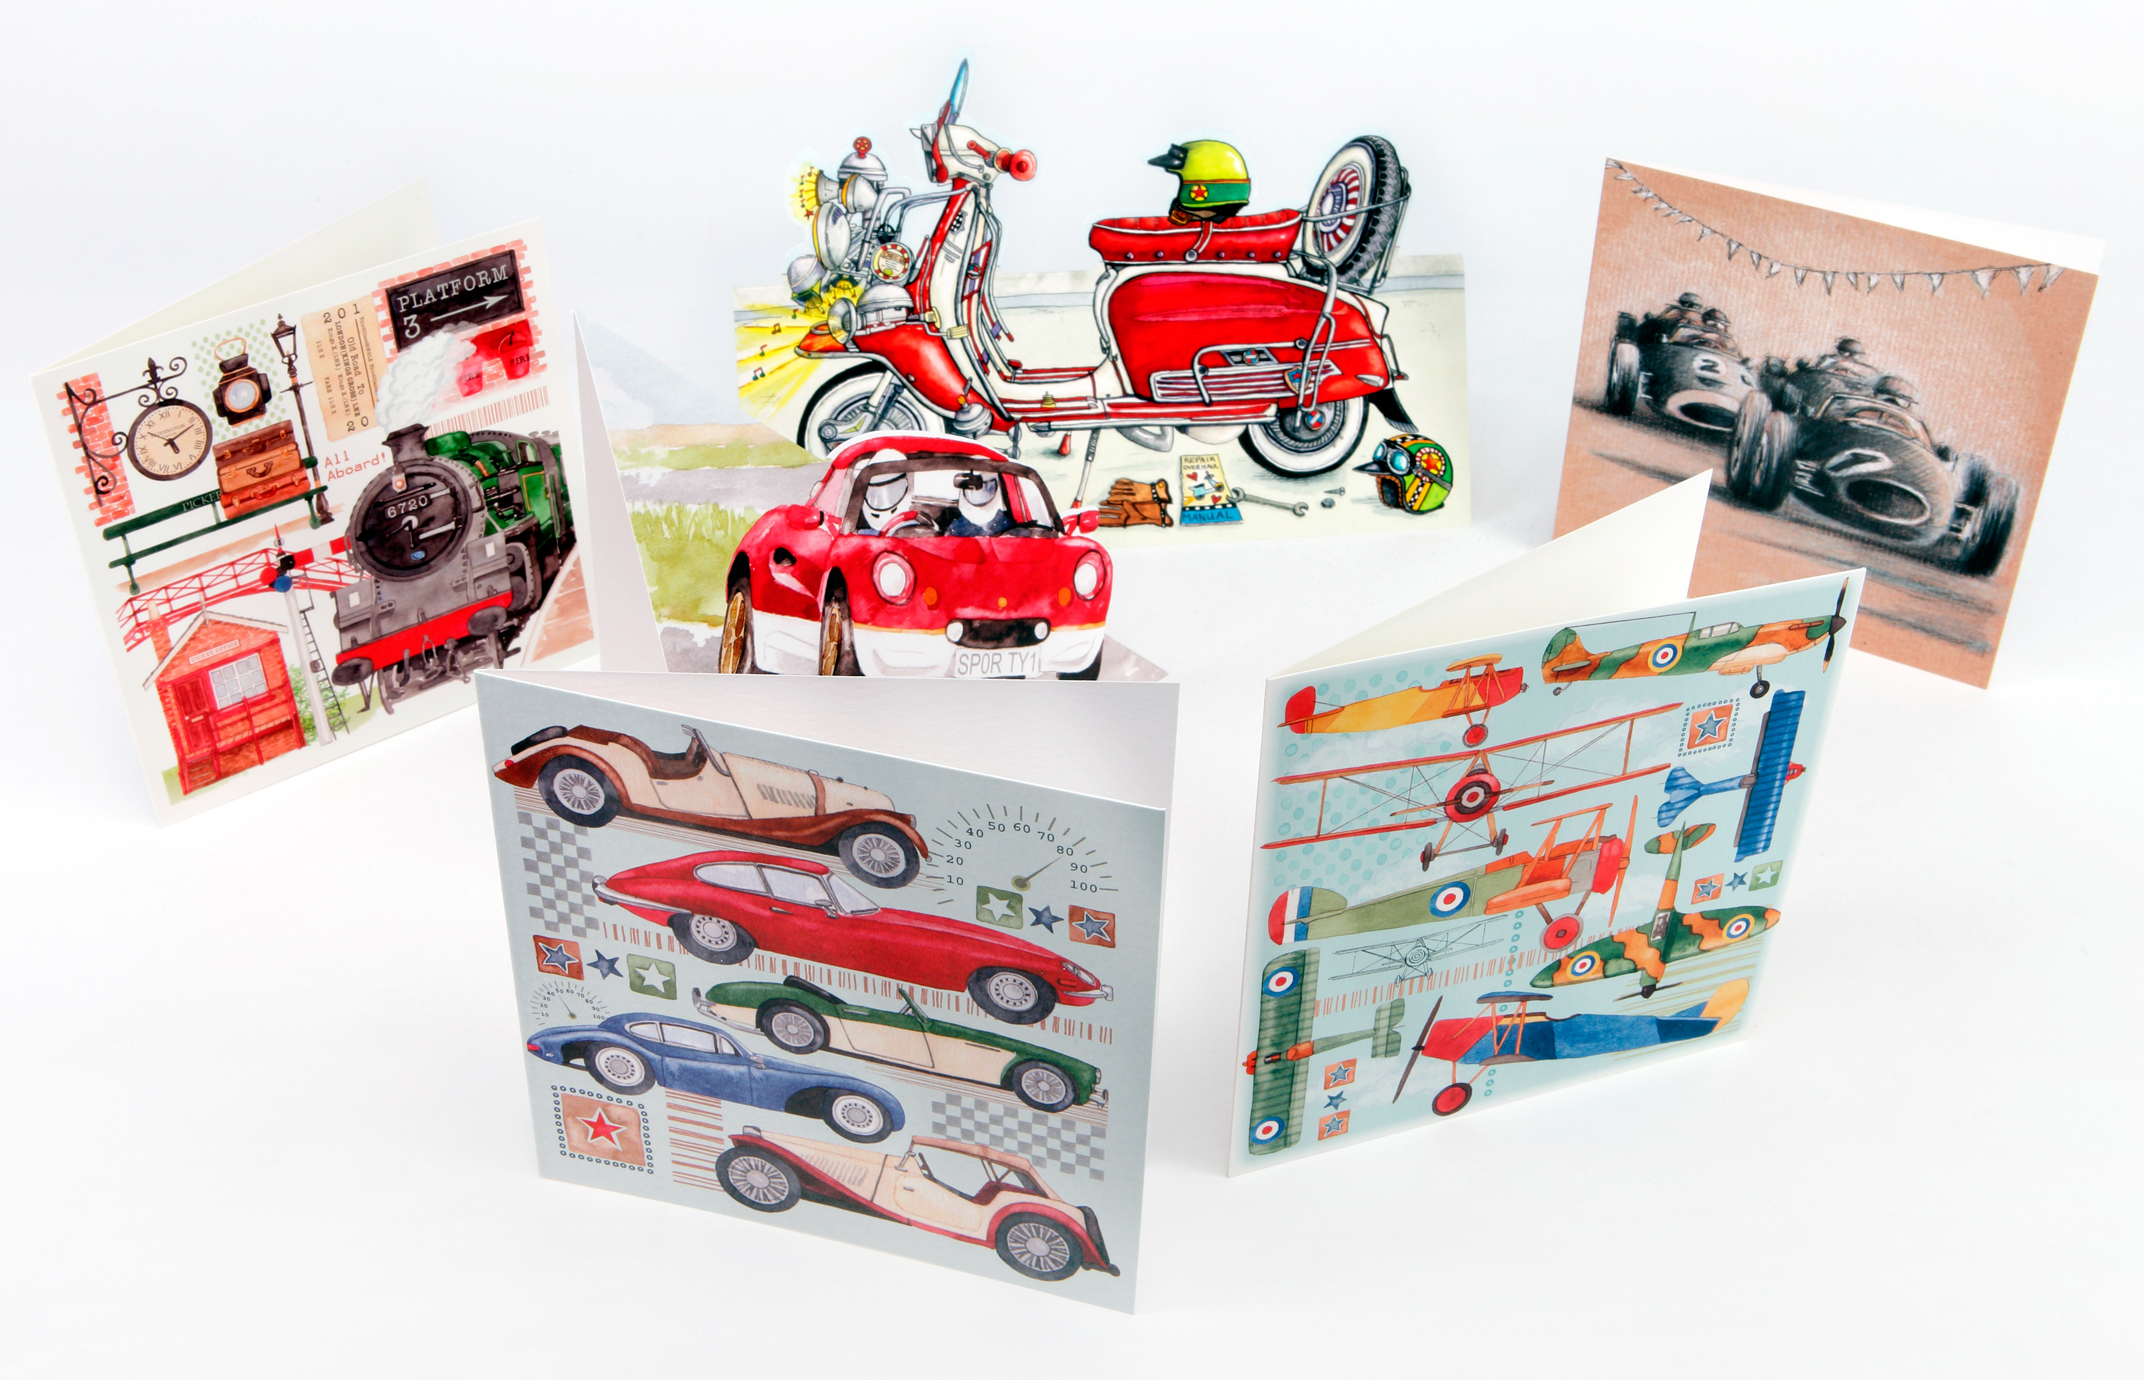 Transport themed greeting cards